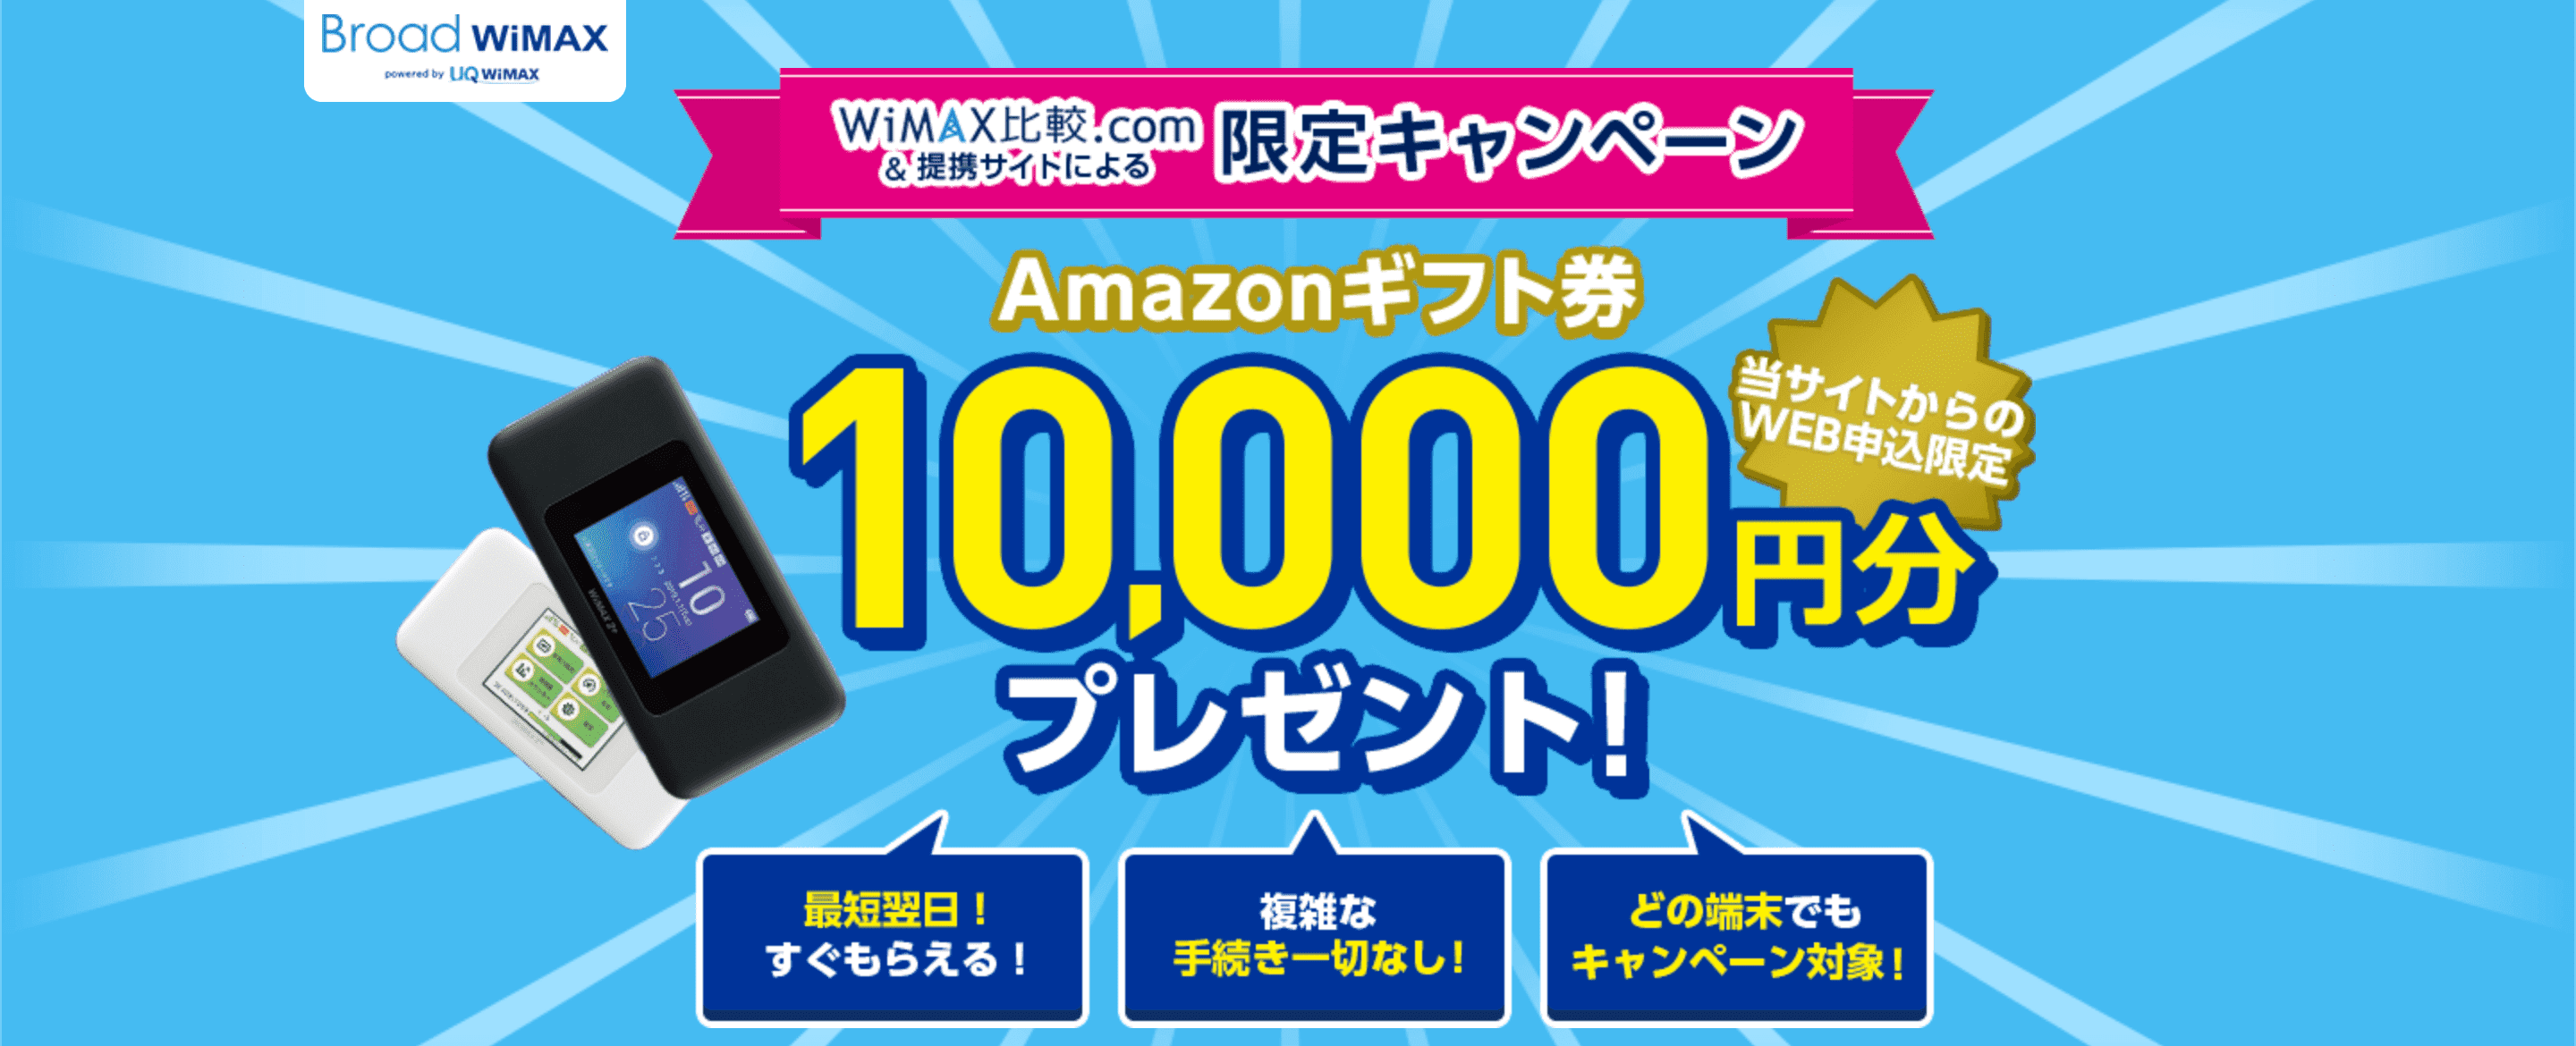 Broad WiMAXの限定キャンペーン